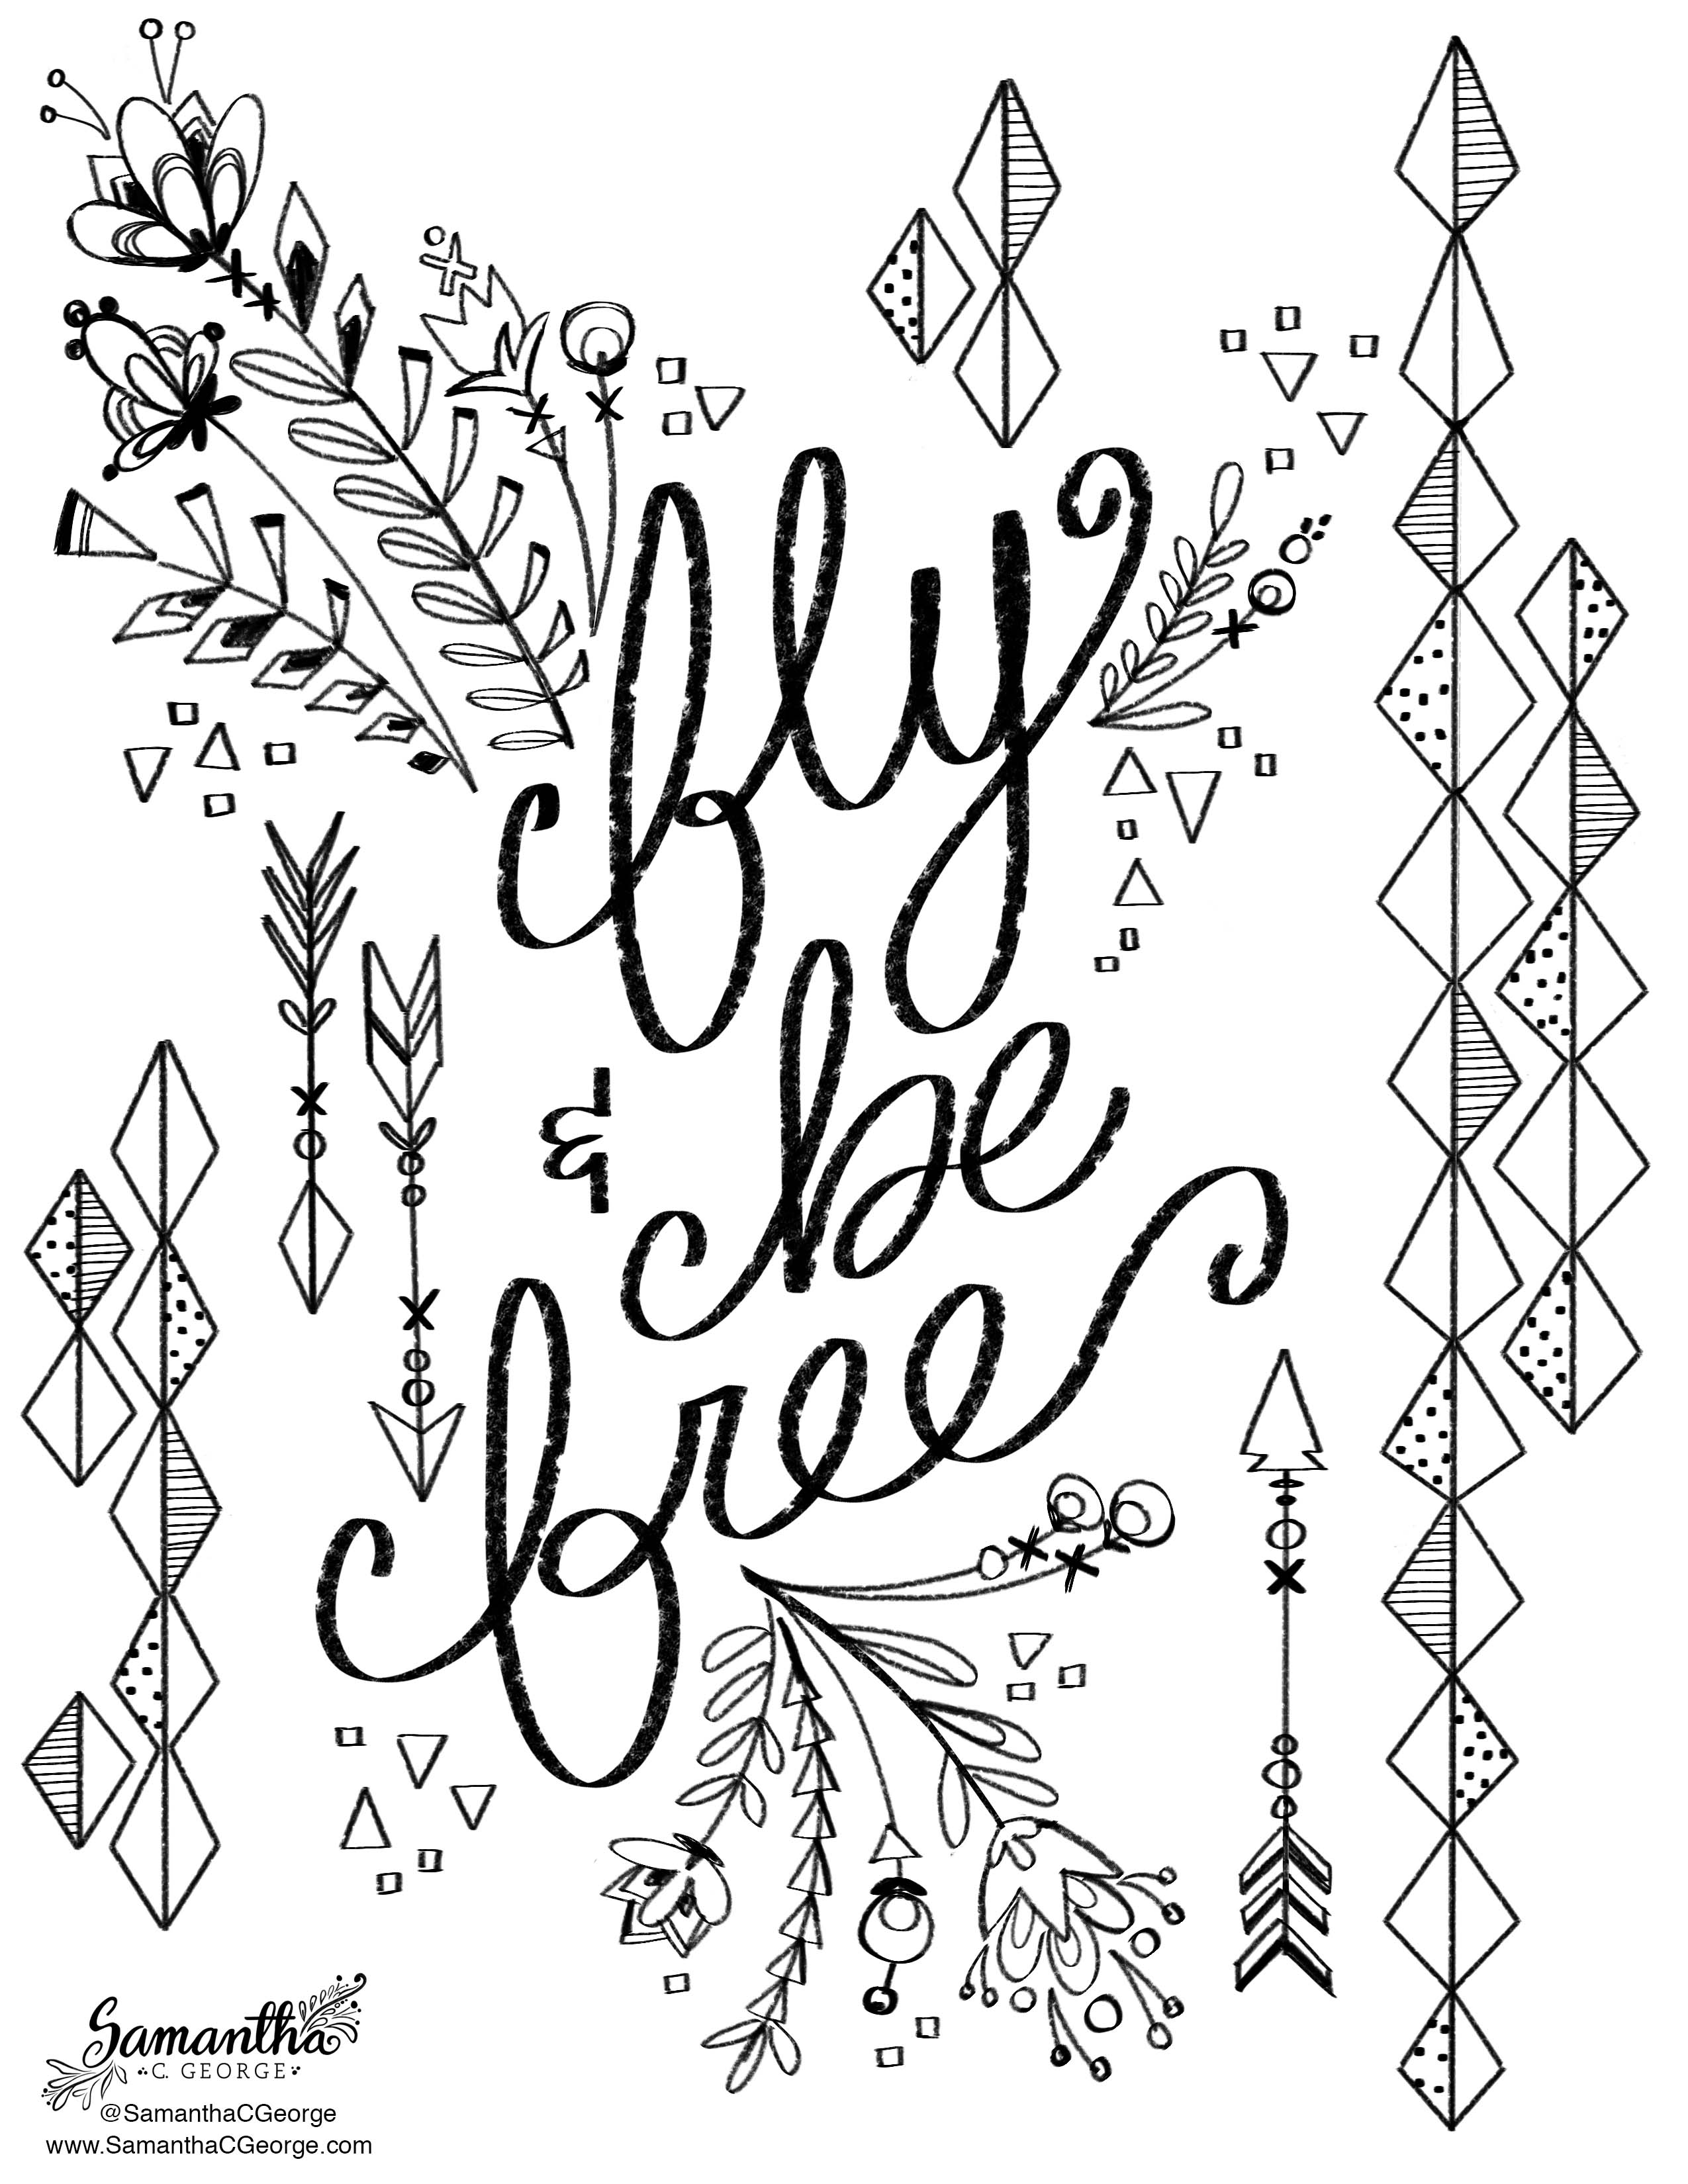 free coloring pages samantha c george